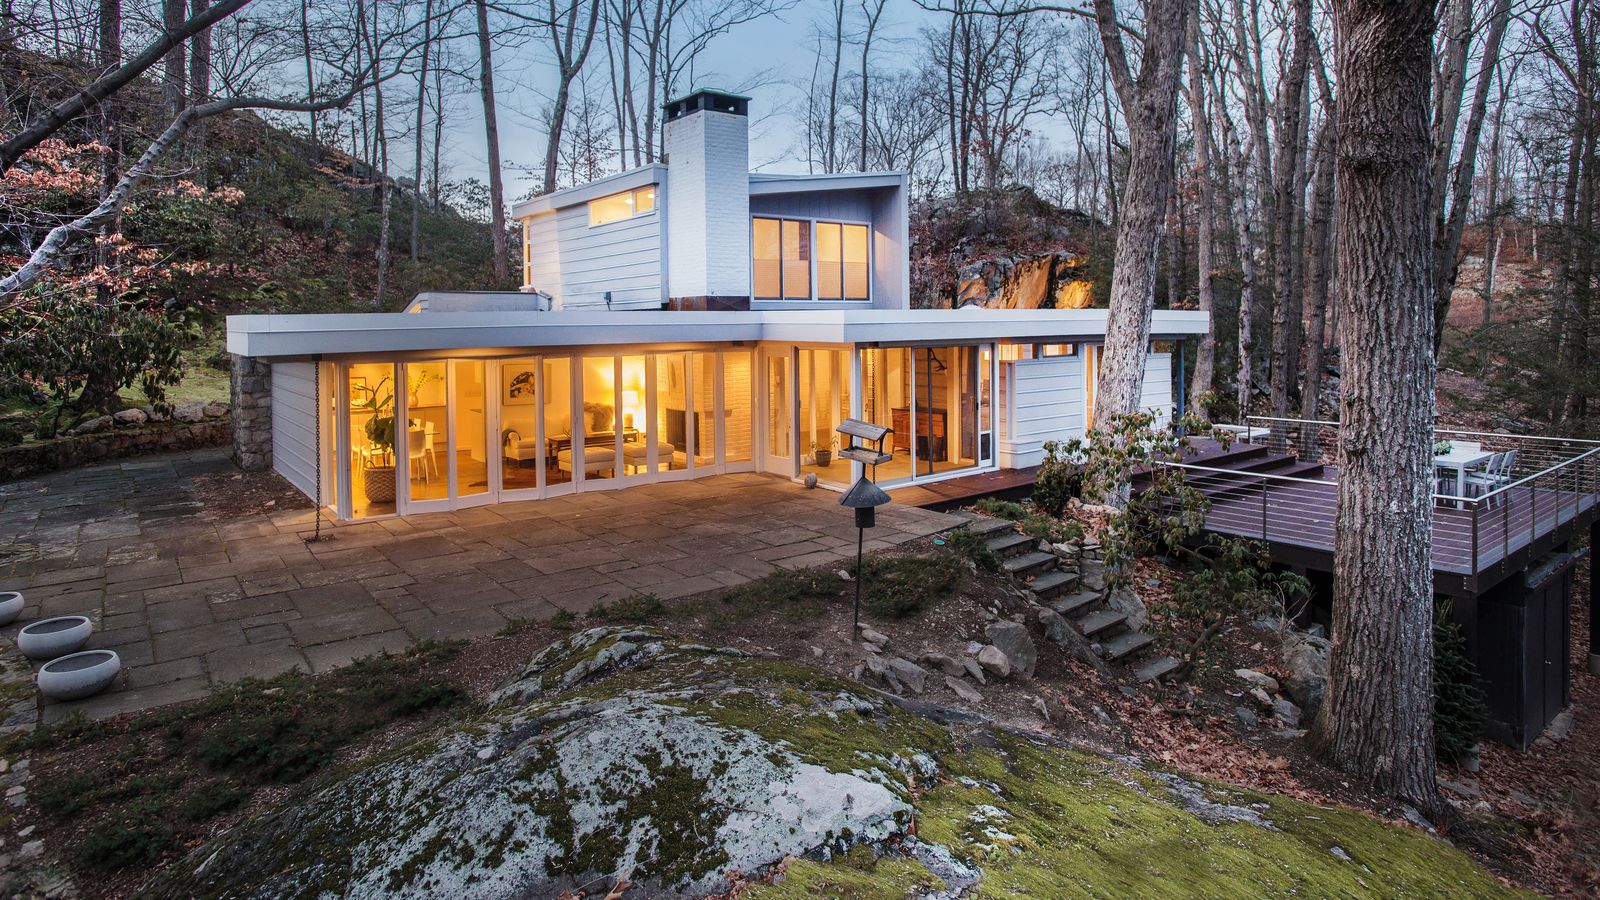 Midcentury Hilltop Jewel Box With Lake Views Asks 800K